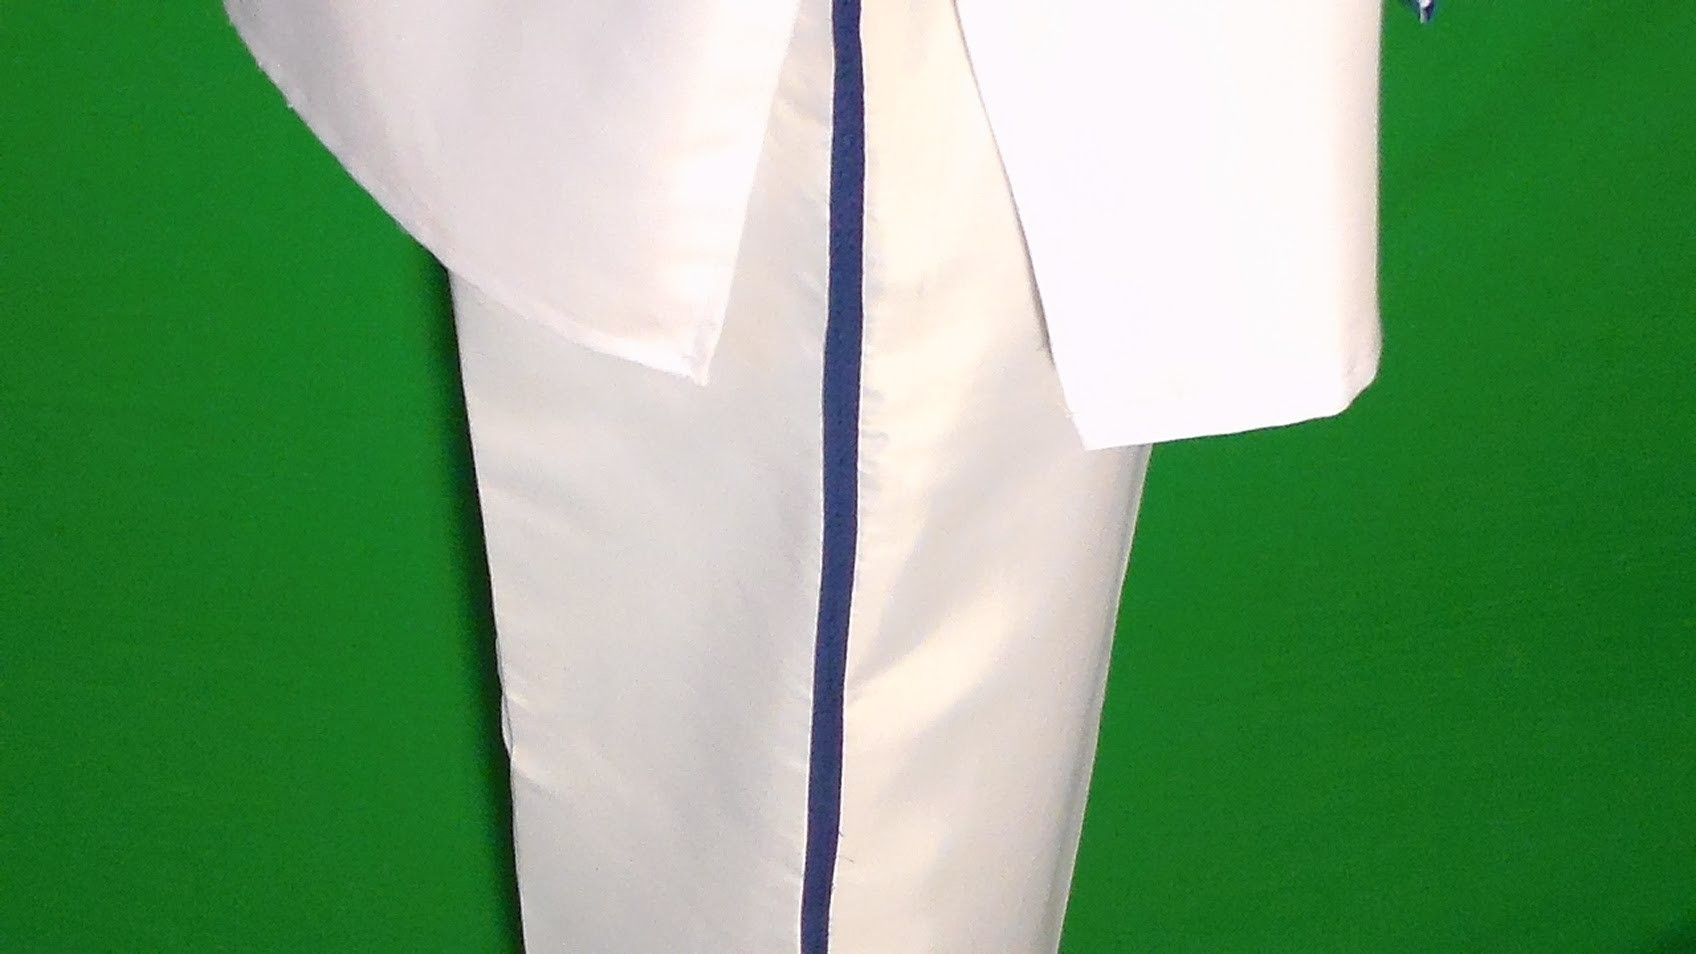 HOW to make karate pants from a shower curtain